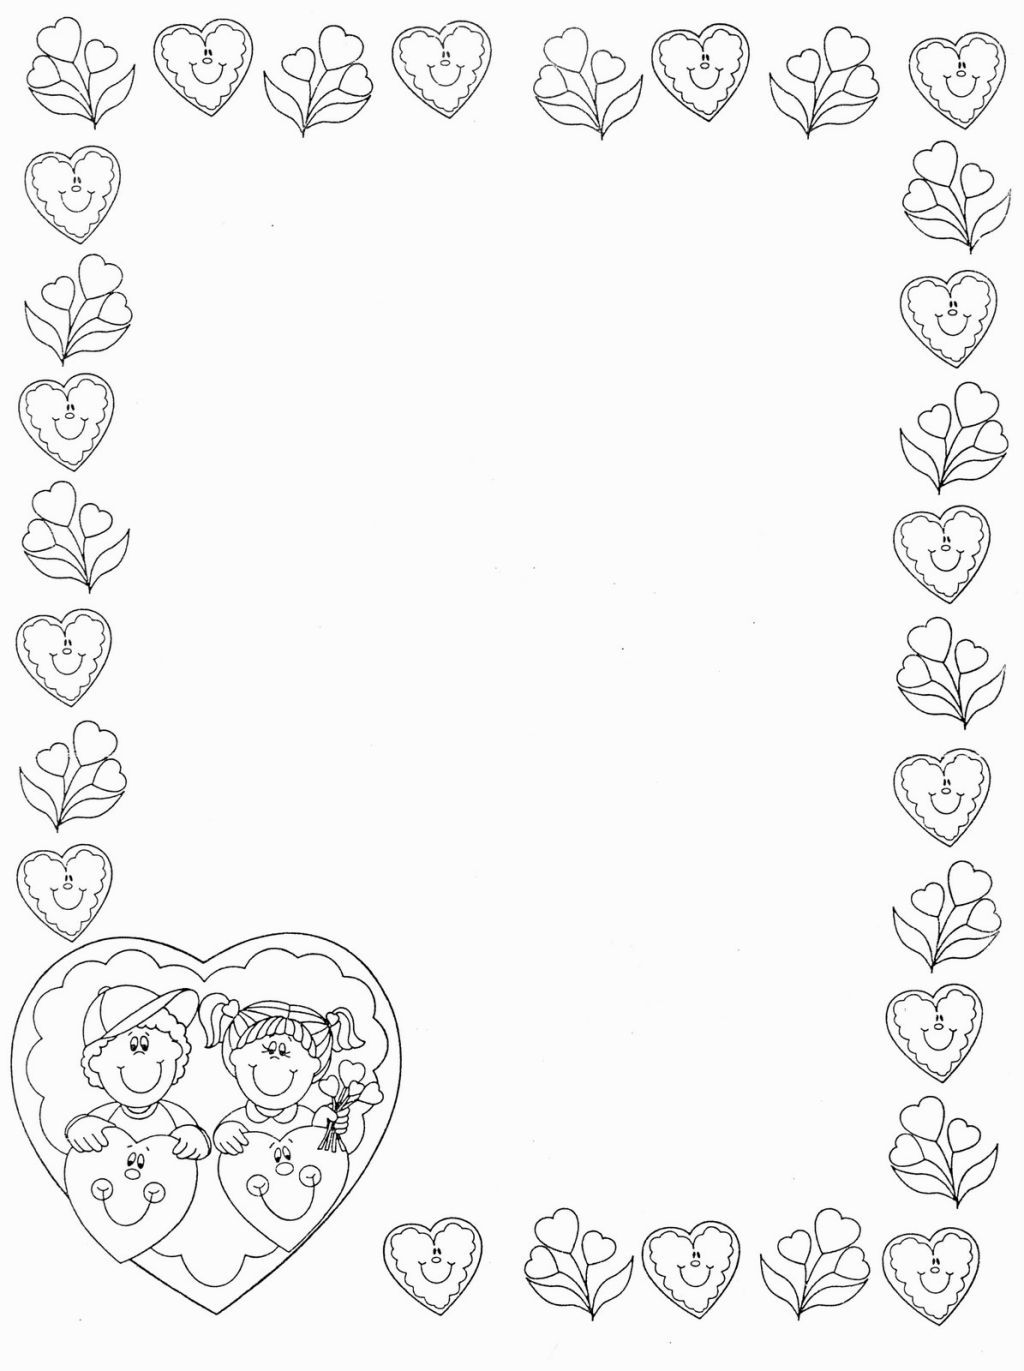 Carson Dellosa Coloring Pages Coloring Pages Pinterest